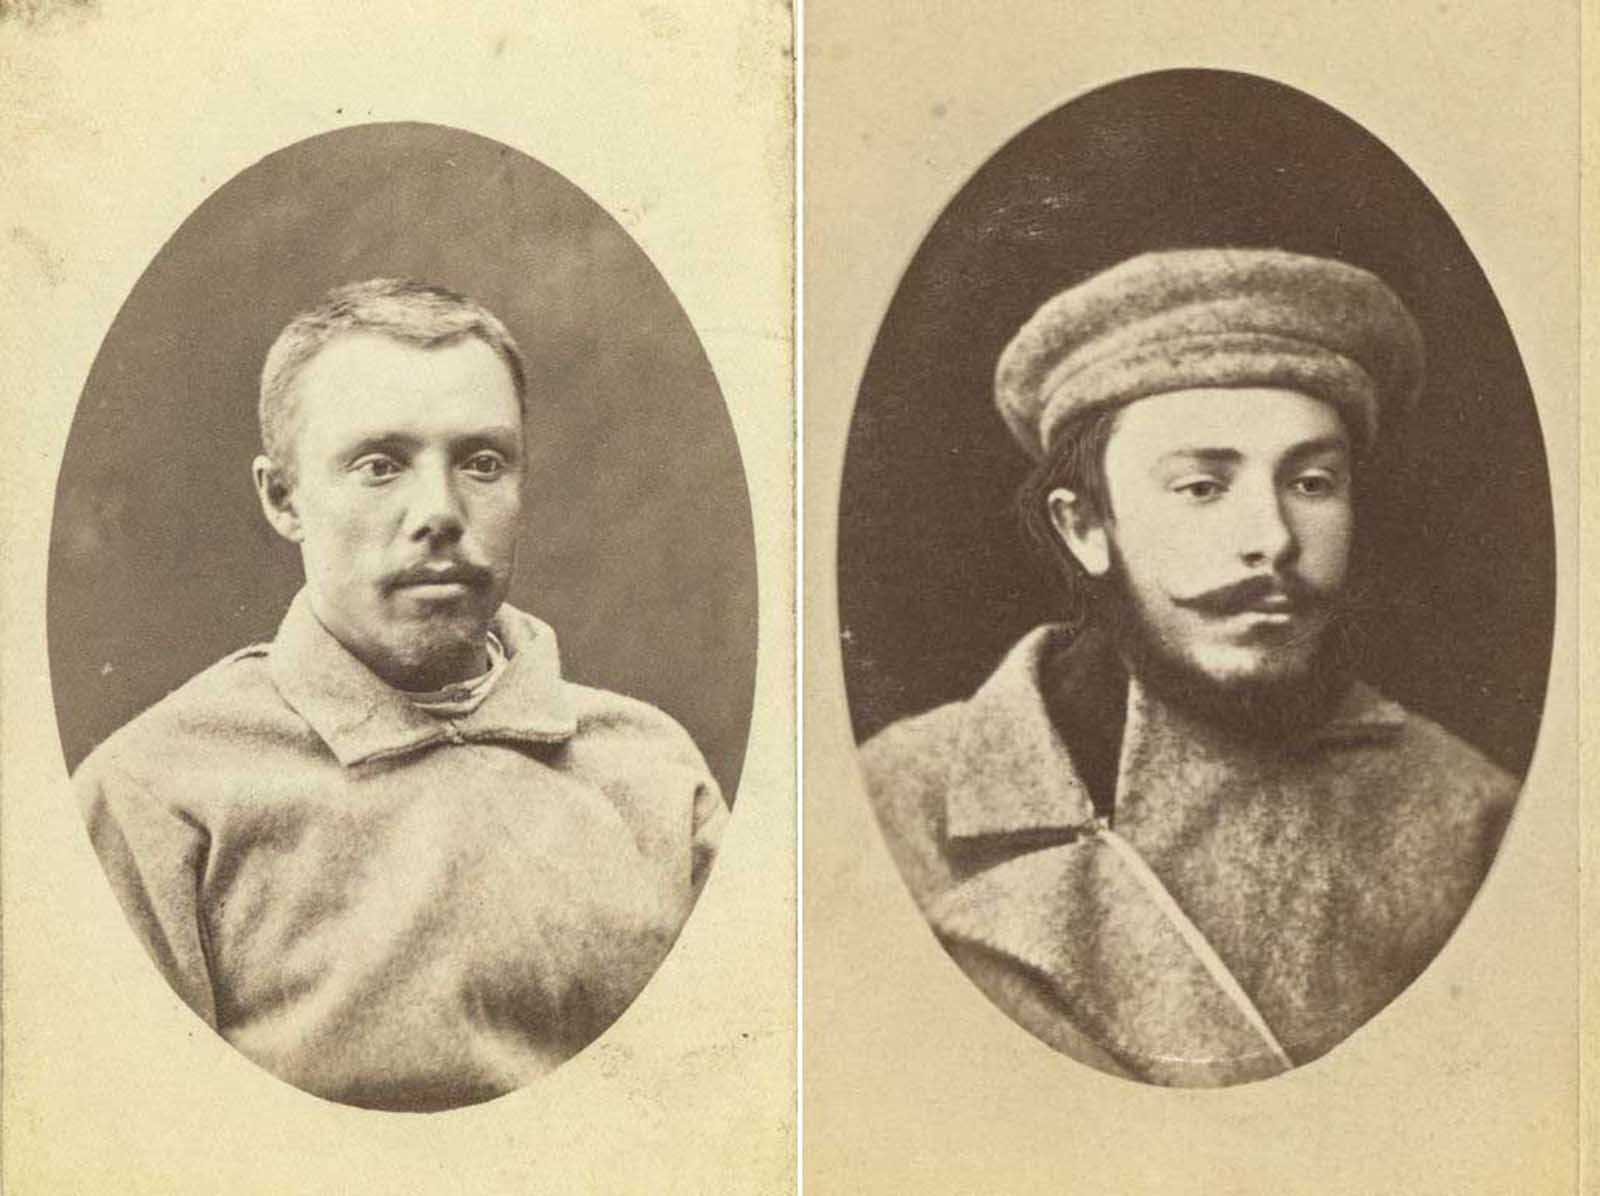 (Right) Klenof. (Left) Dikofski, sentenced in Odessa to 15 to 20 years.